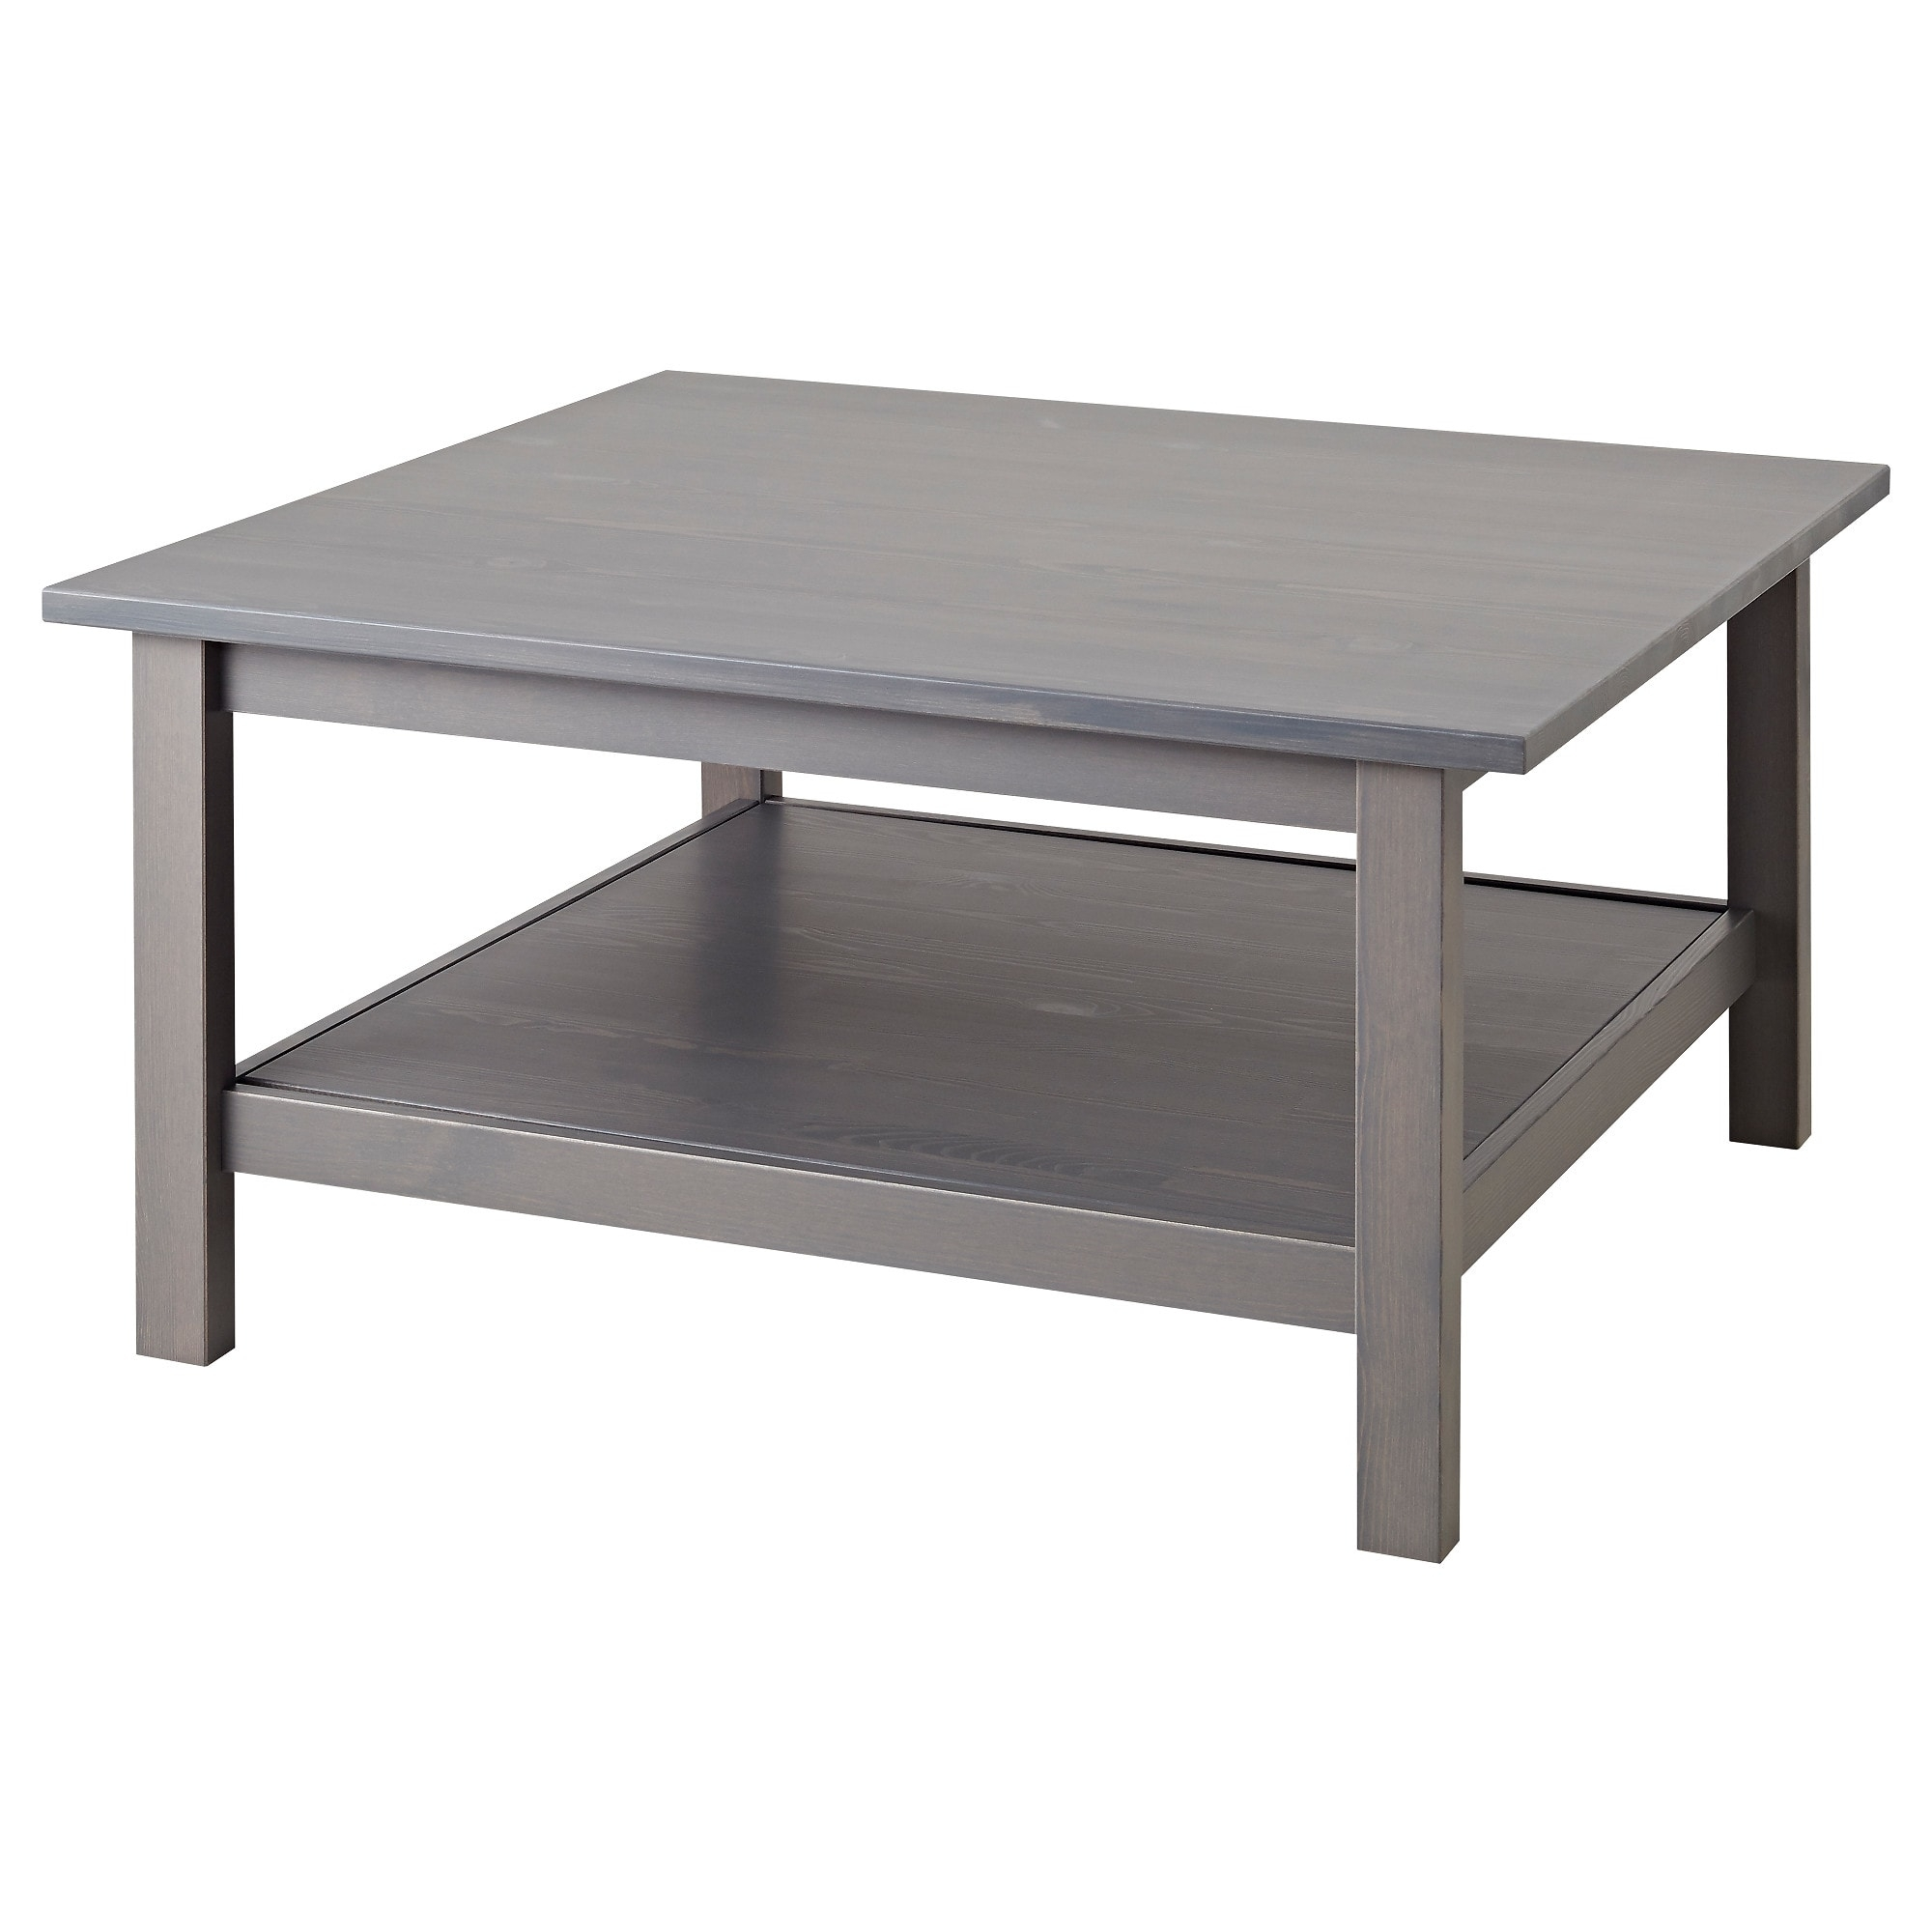 Hemnes Coffee Table - Black-Brown - Ikea intended for Go-Cart White Rolling Coffee Tables (Image 19 of 30)